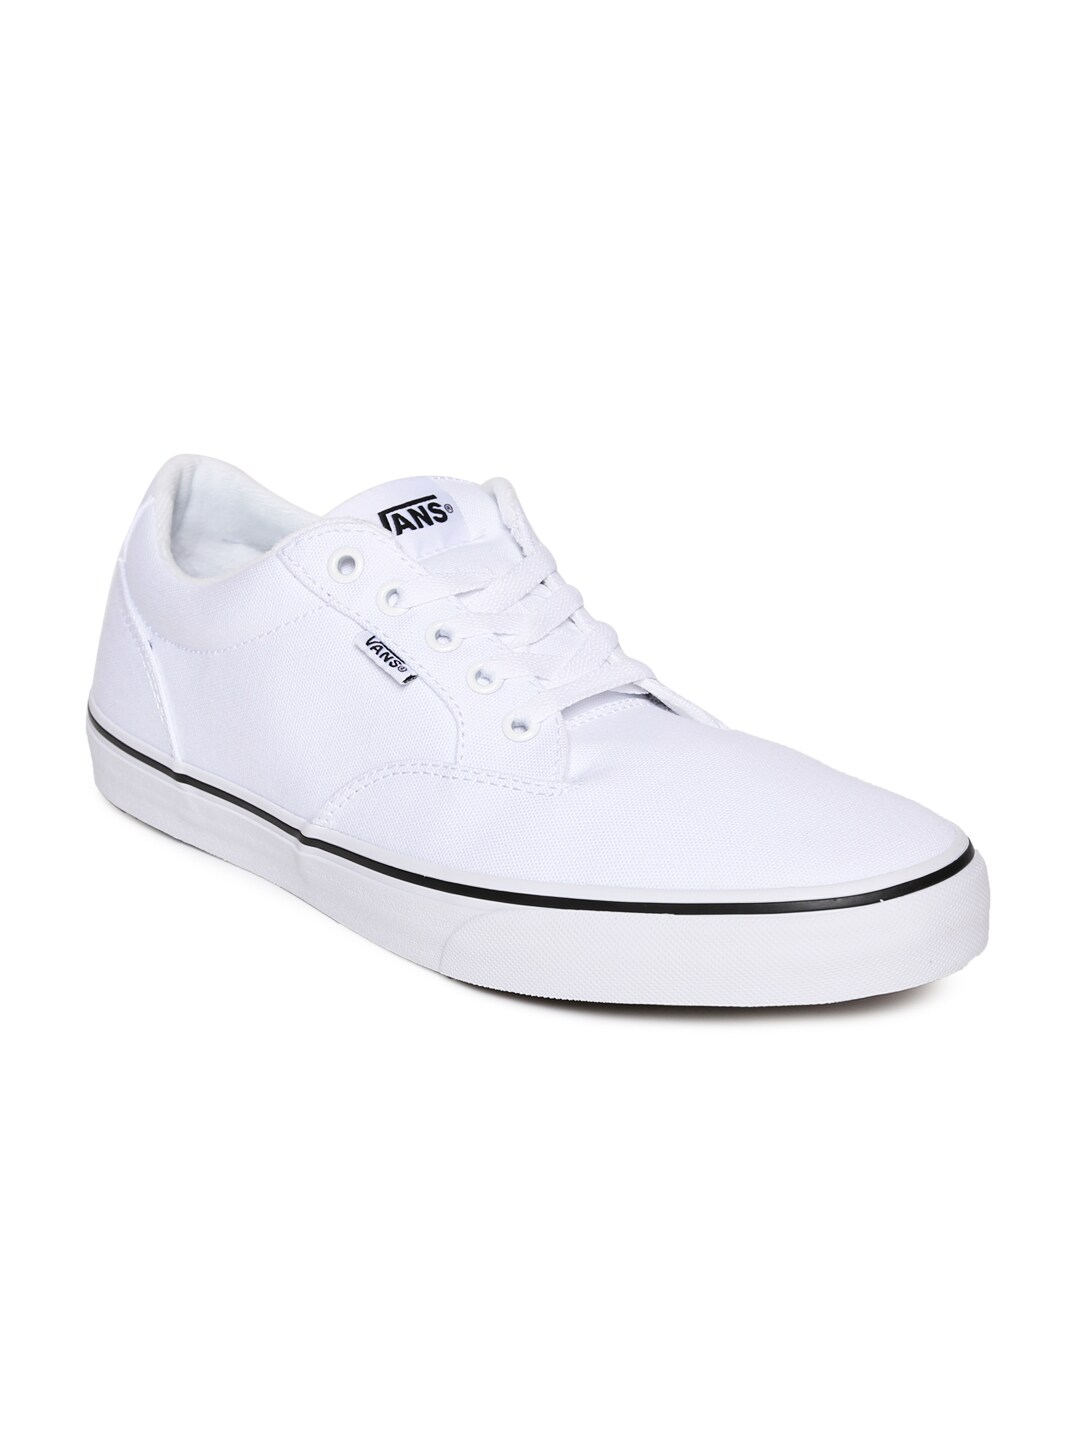 8449cbe26d3f2e Vans Casual Shoes - Buy Vans Casual Shoes Online in India